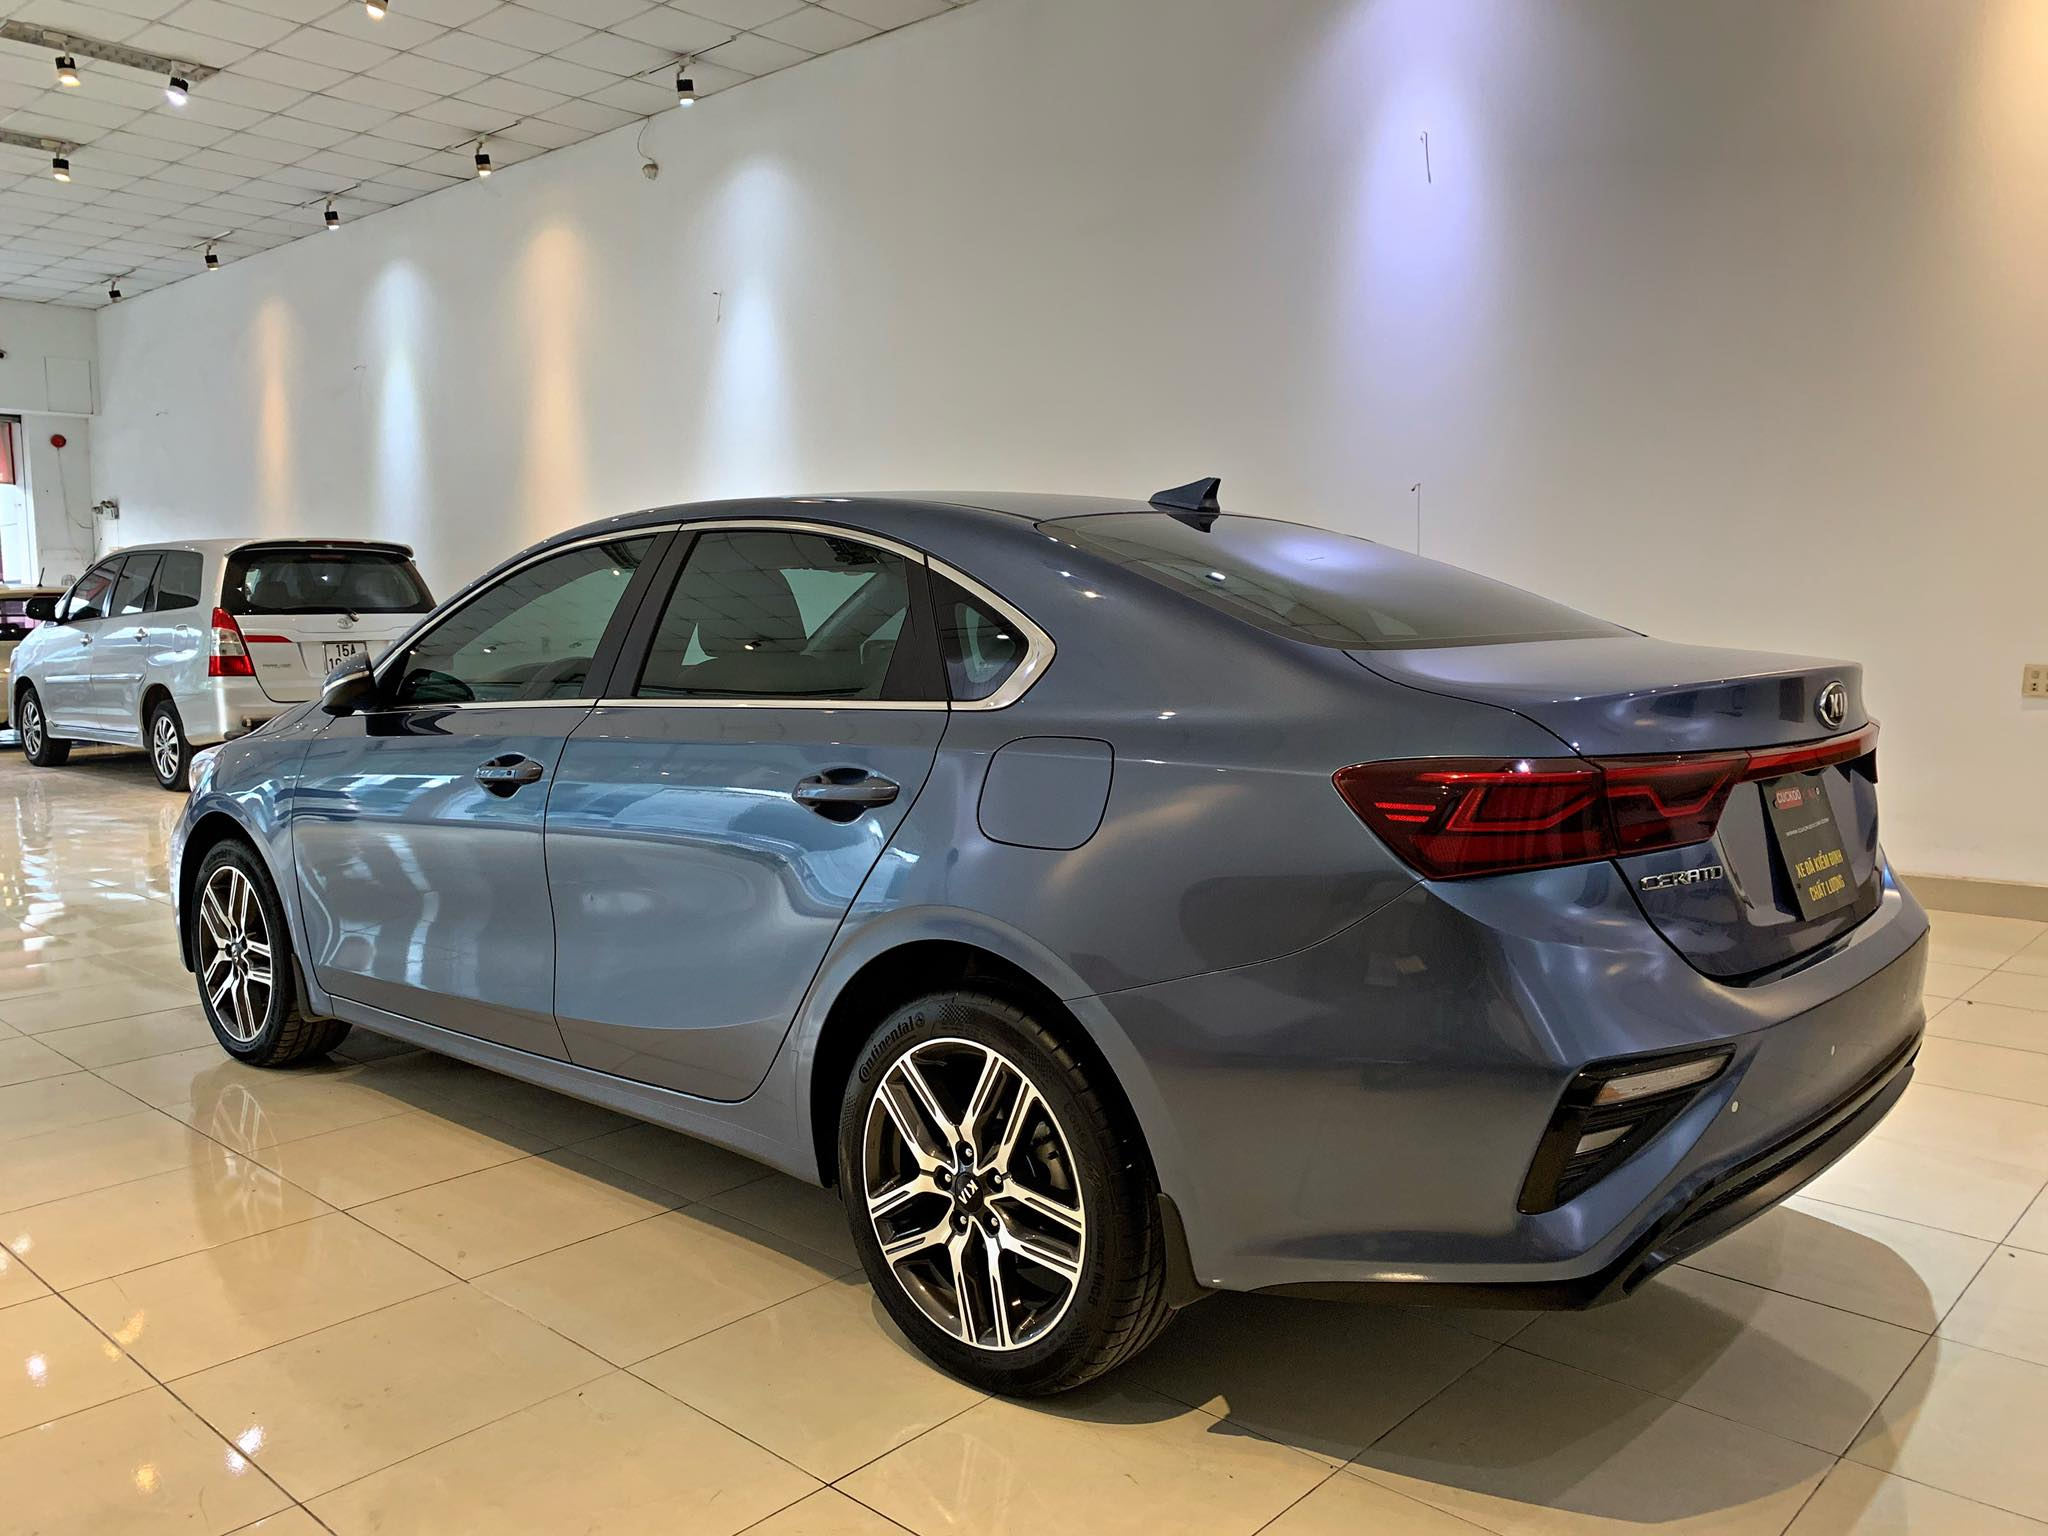 KIA CERATO LUXURY 1.6AT 2019